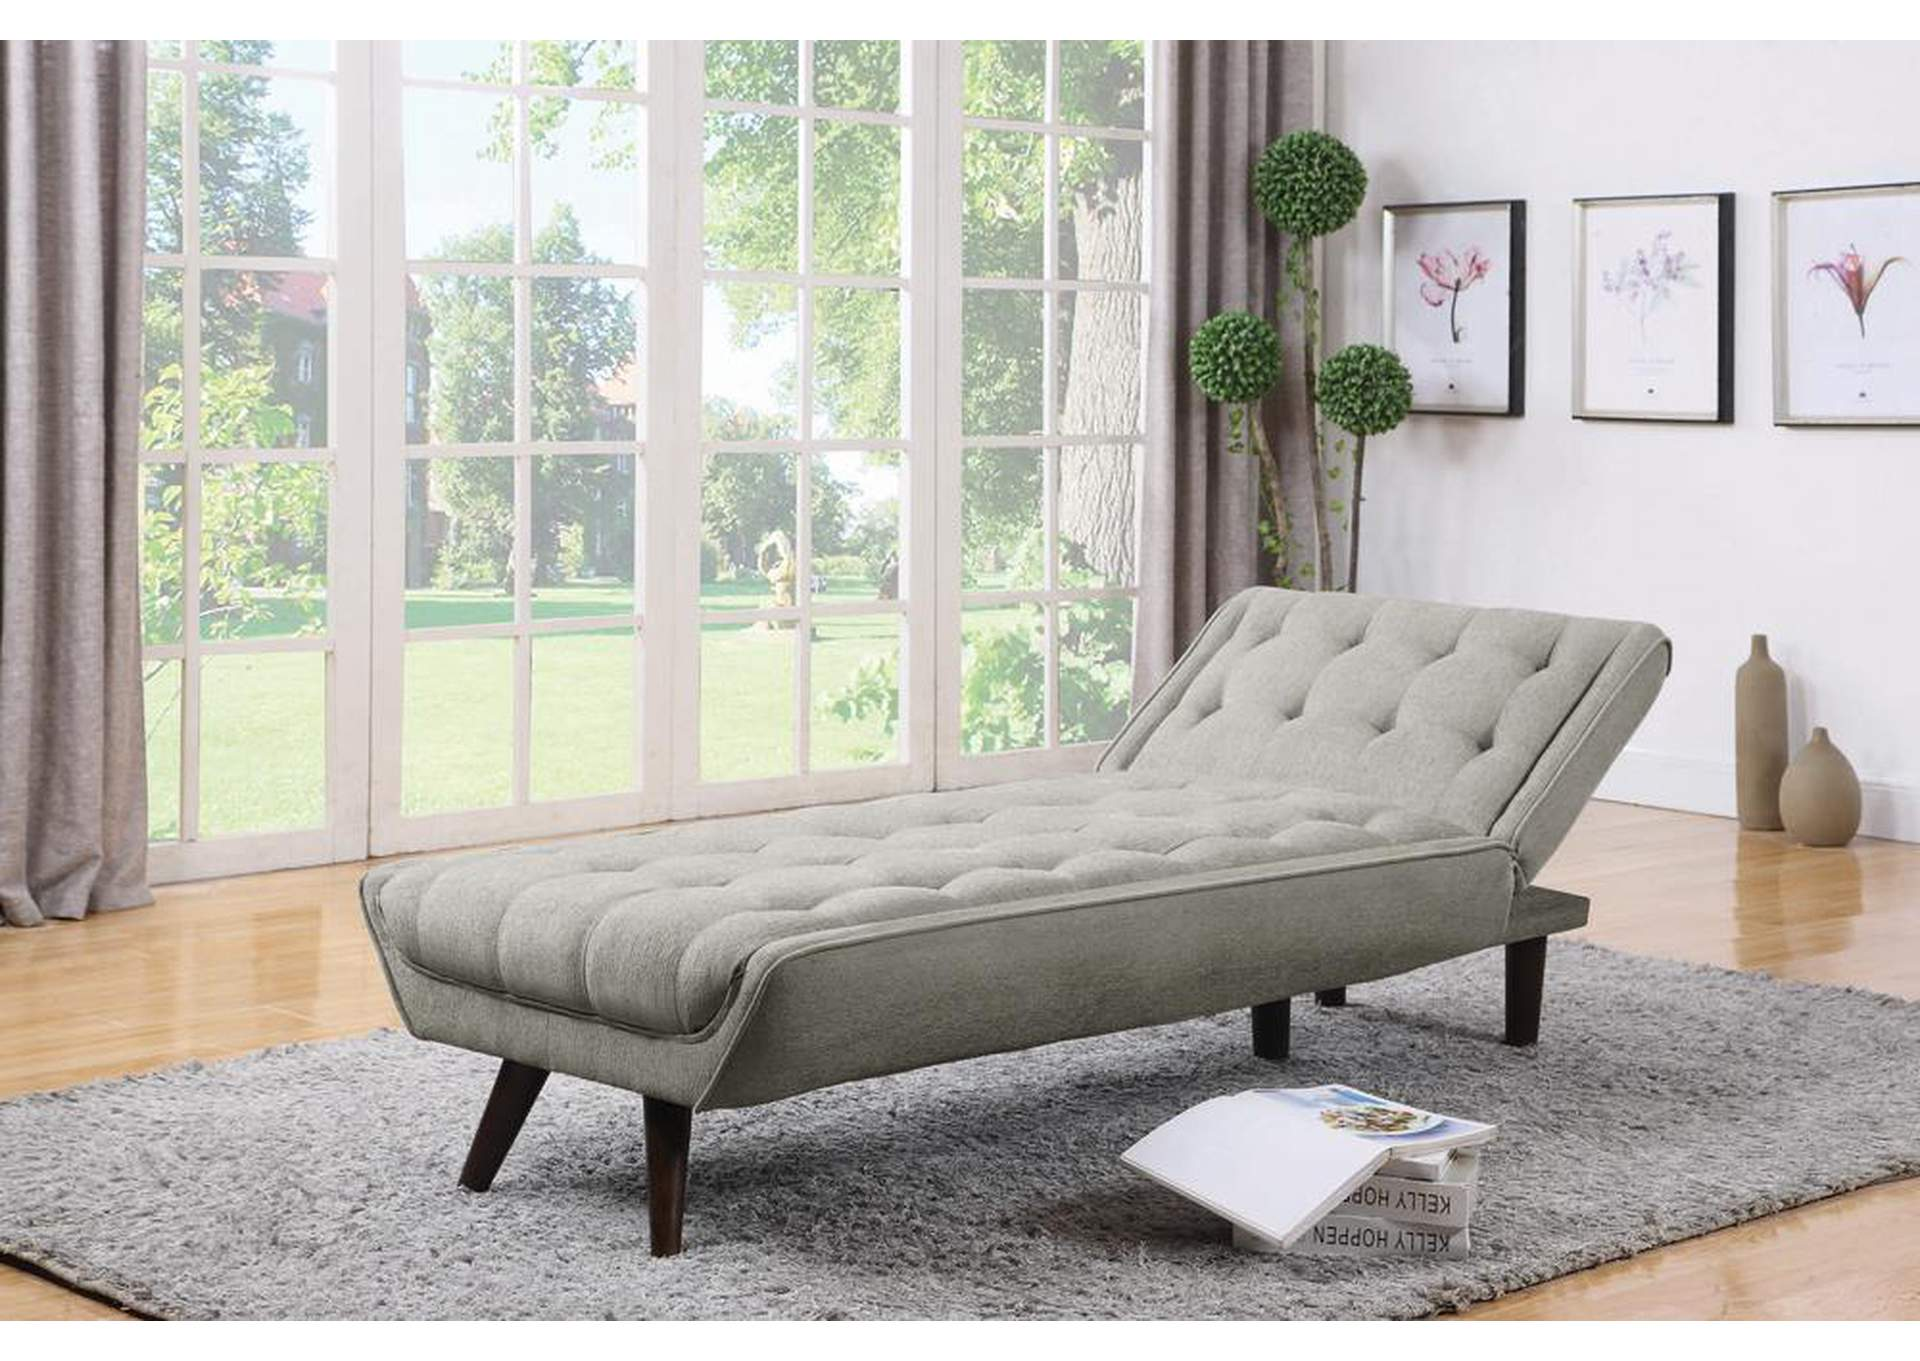 Dove Grey Chaise Bed,ABF Coaster Furniture